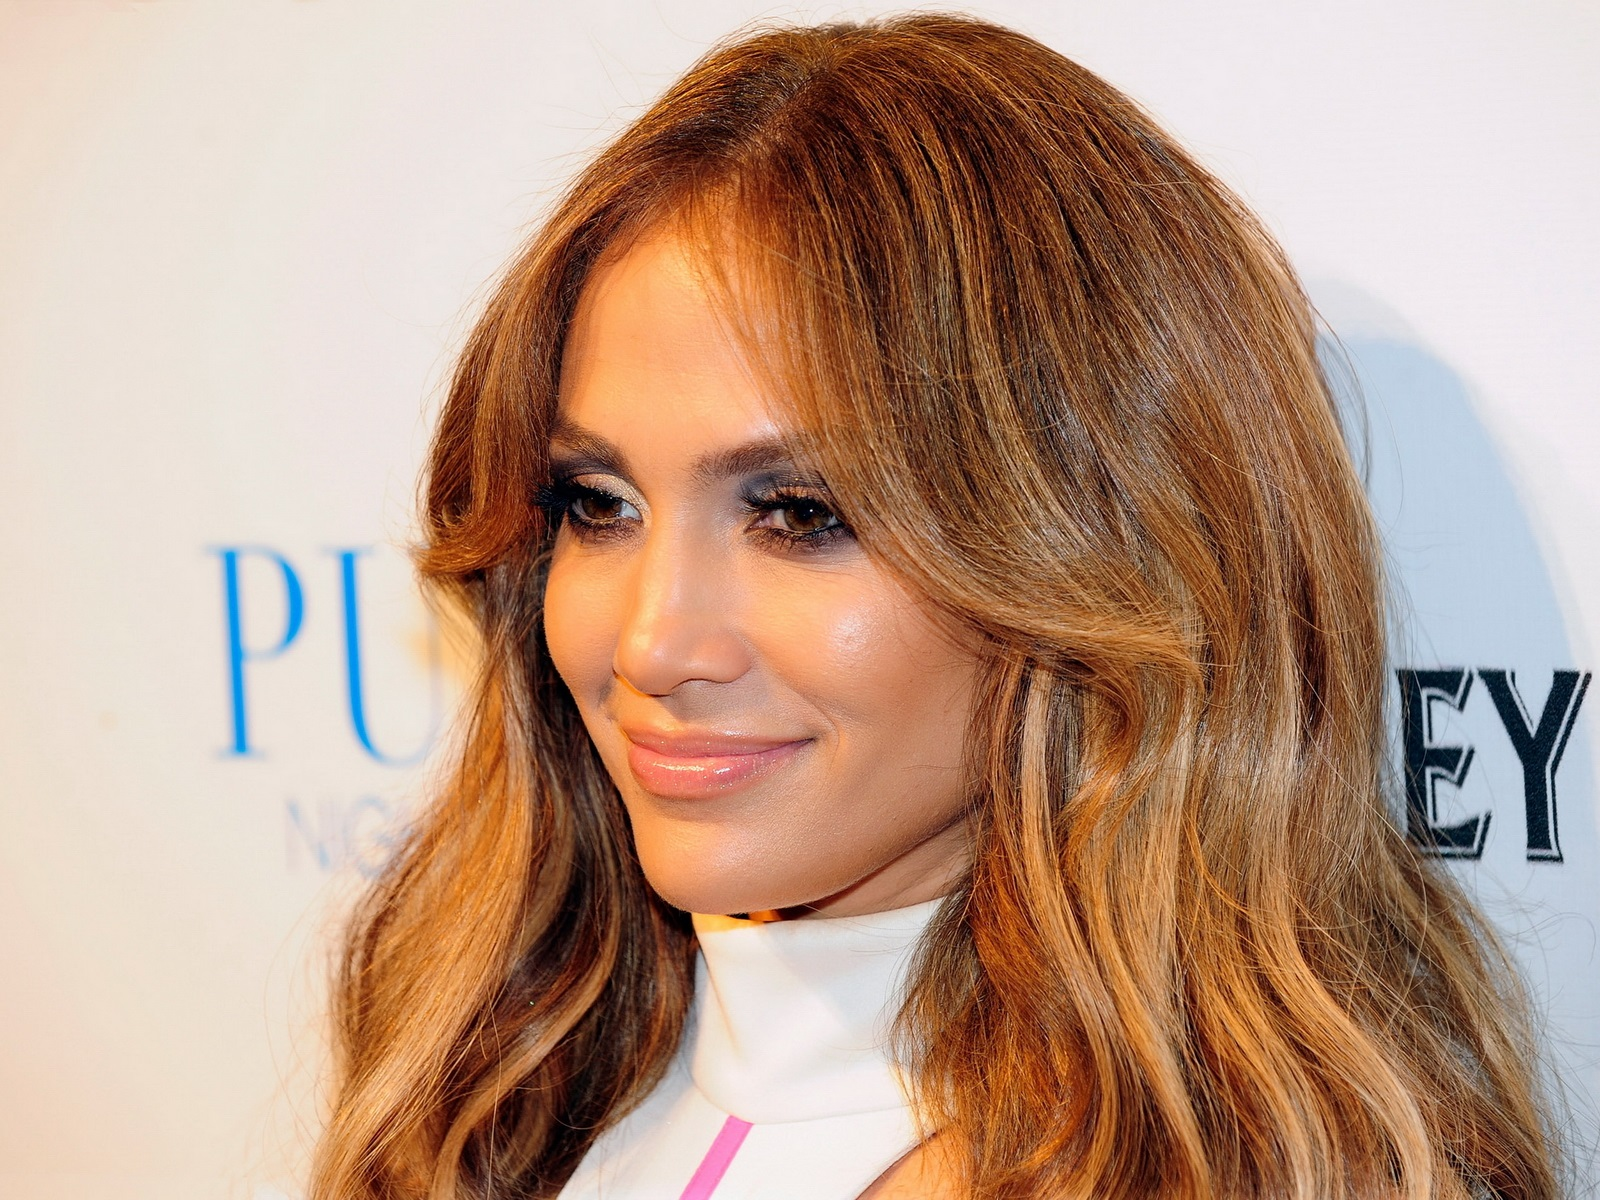 Jennifer Lopez Makes A Special Appearance At Pure Nightclub